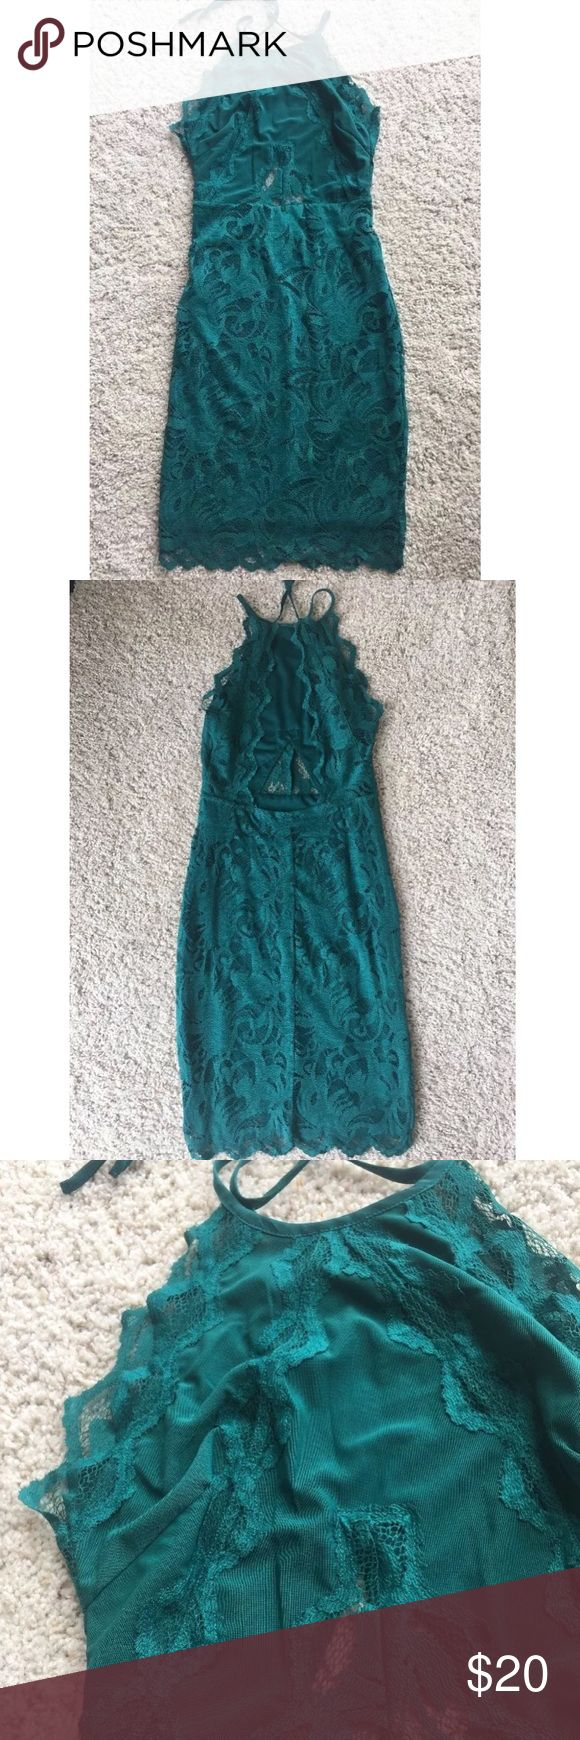 H&M Emerald Green Lace Dress Open Back Dress 4 H&M  Women's dress  SiZe 4  Emerald green lace  Tried on, but never wore!  New without tags  GORGEOUS!!  Double lined, some see through parts.  Lace  Open back, ties at neck  Knee length.  Excellent quality.  Purchased for $39.99 plus tax  Small portion of loose lace at back and can be easily repaired- see last pic H&M Dresses Backless